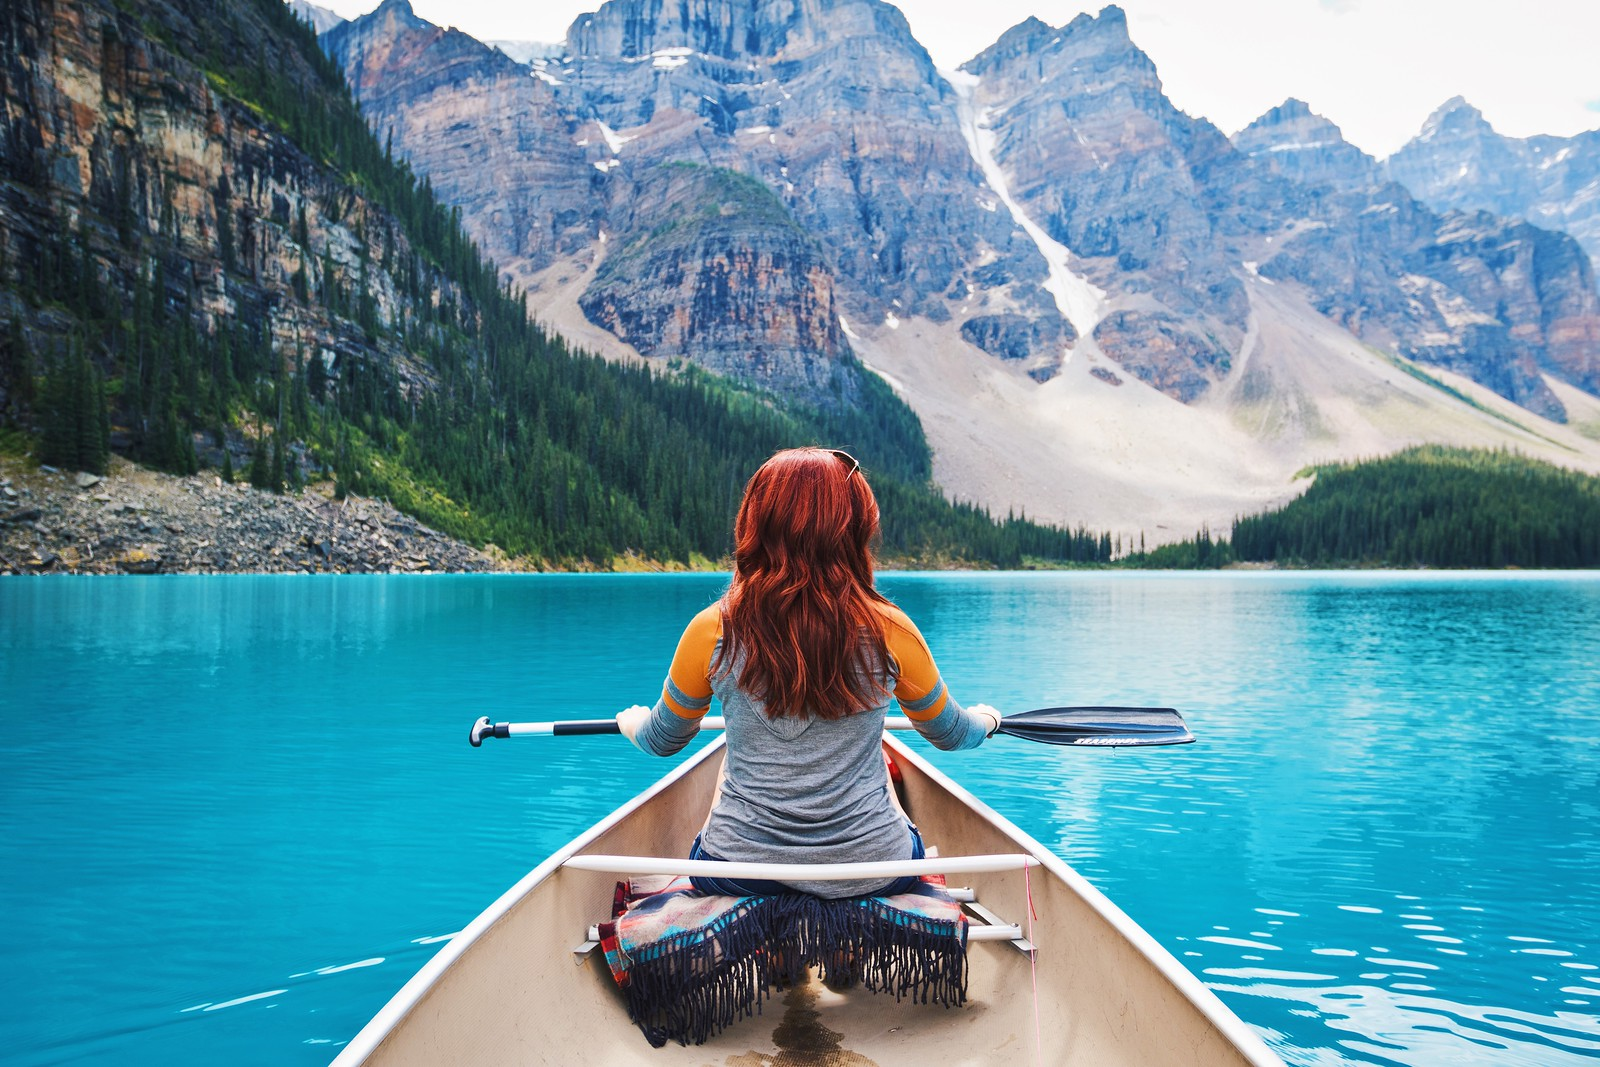 Megan Uncapher - Canoe Moraine Lake - Banff National Park